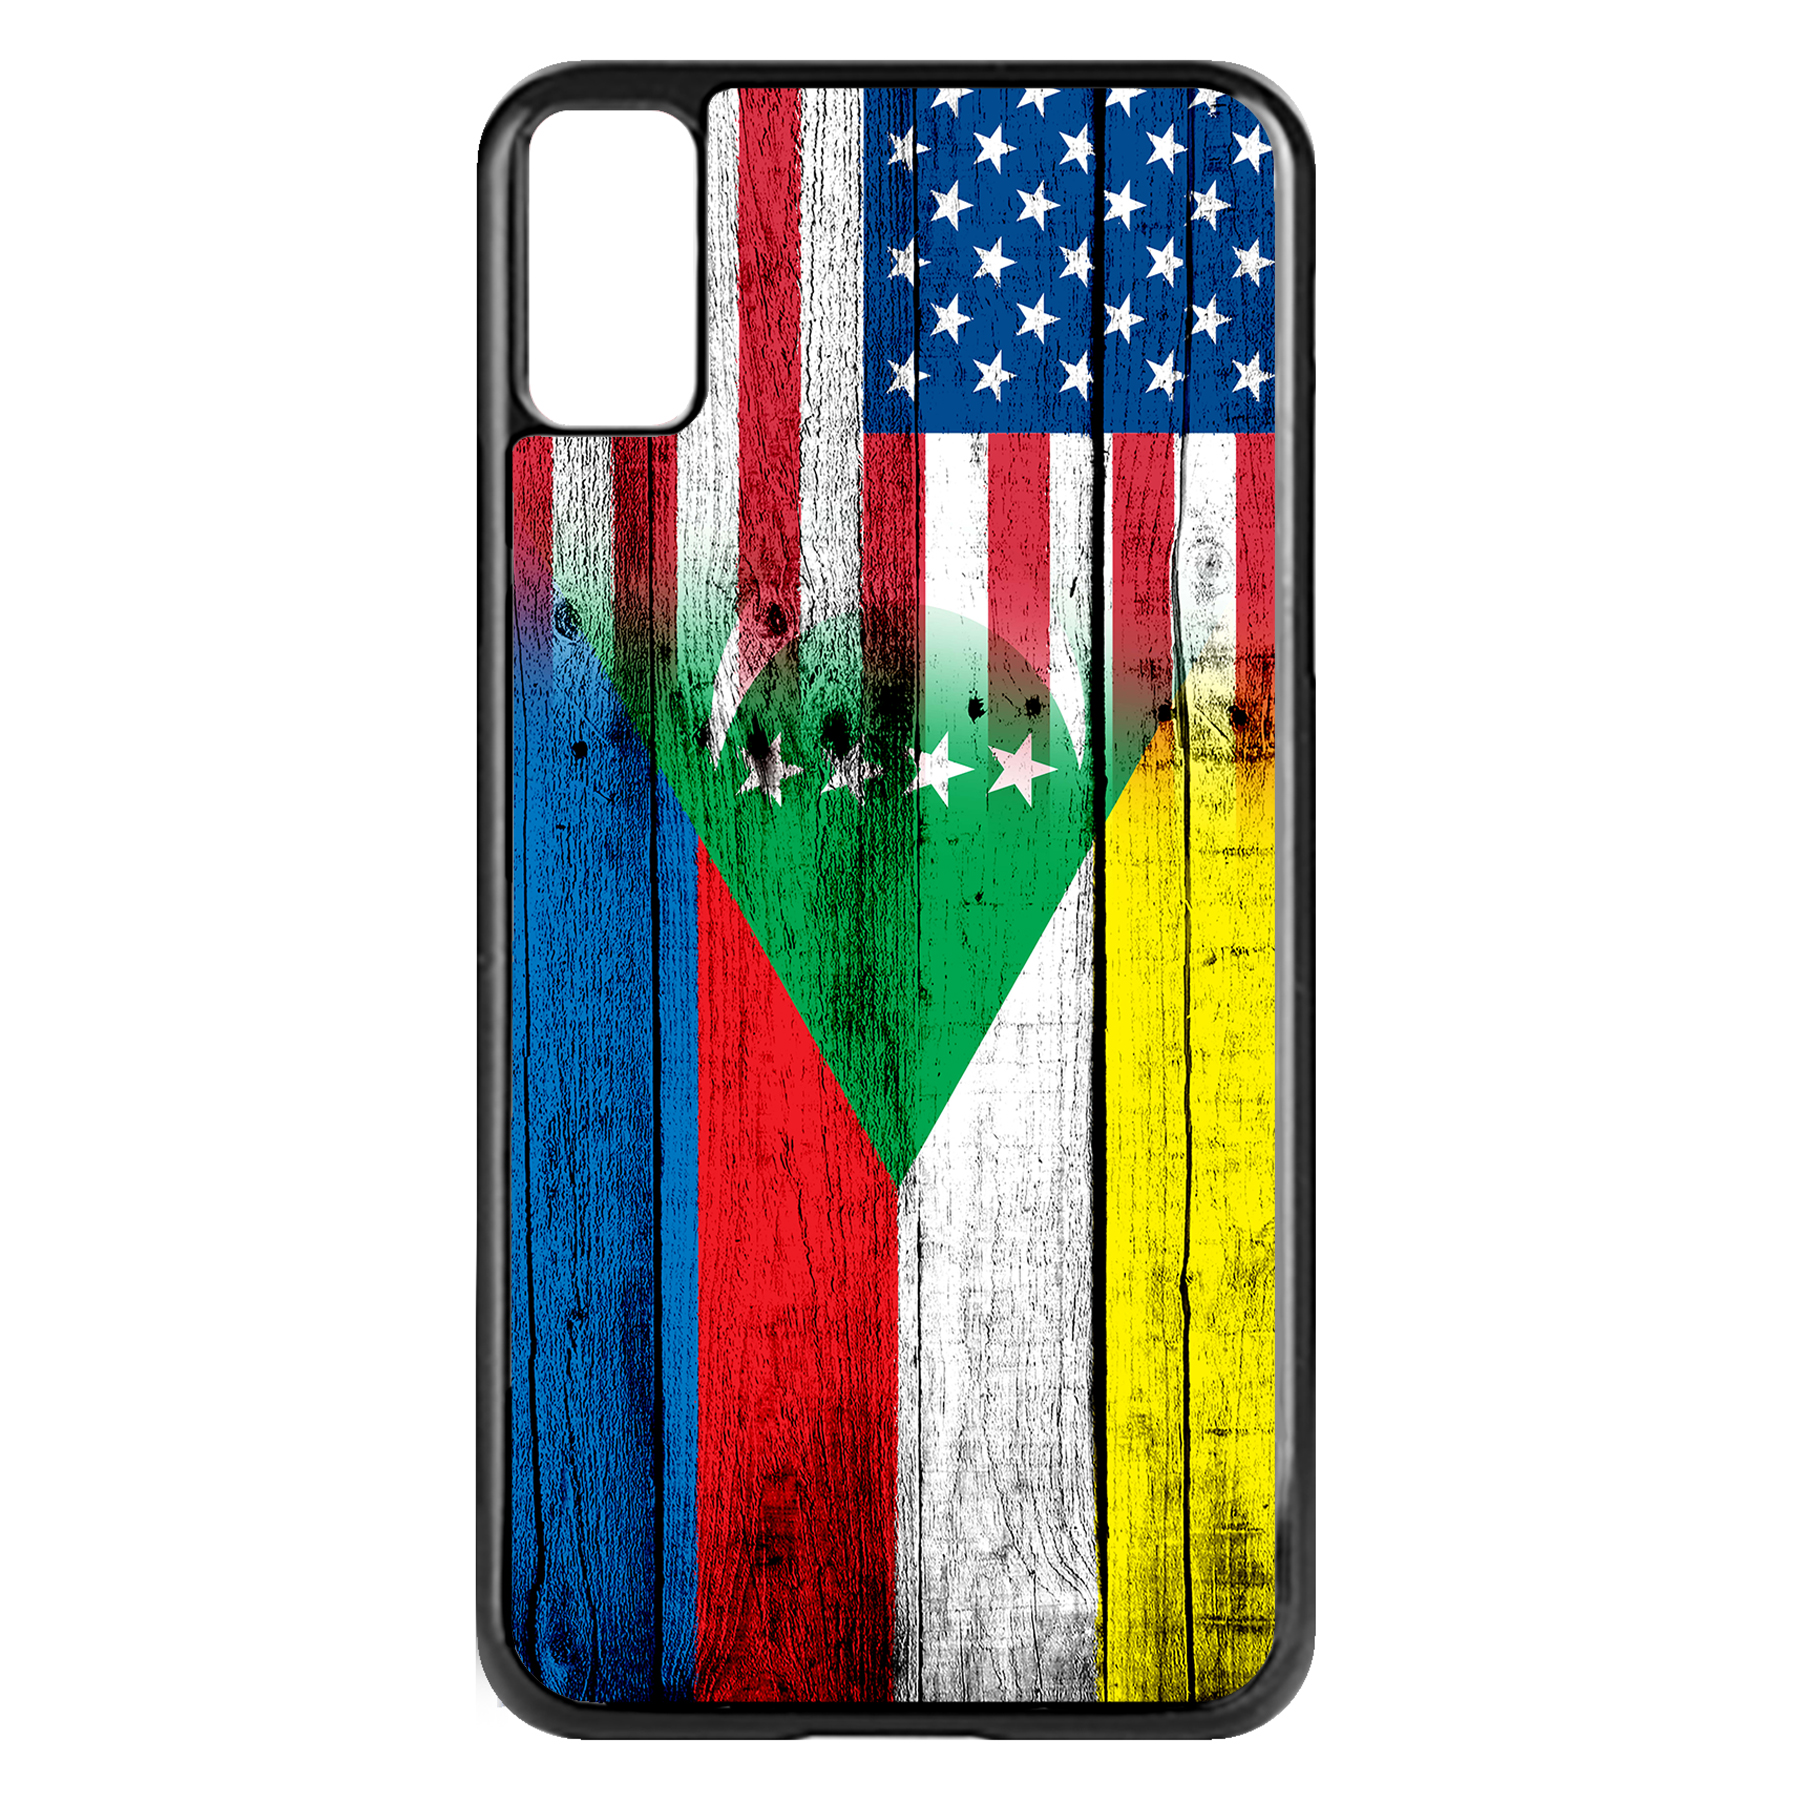 Apple-iPhone-Case-with-Flag-of-Comoros-Comorian-Many-Design-Options thumbnail 14